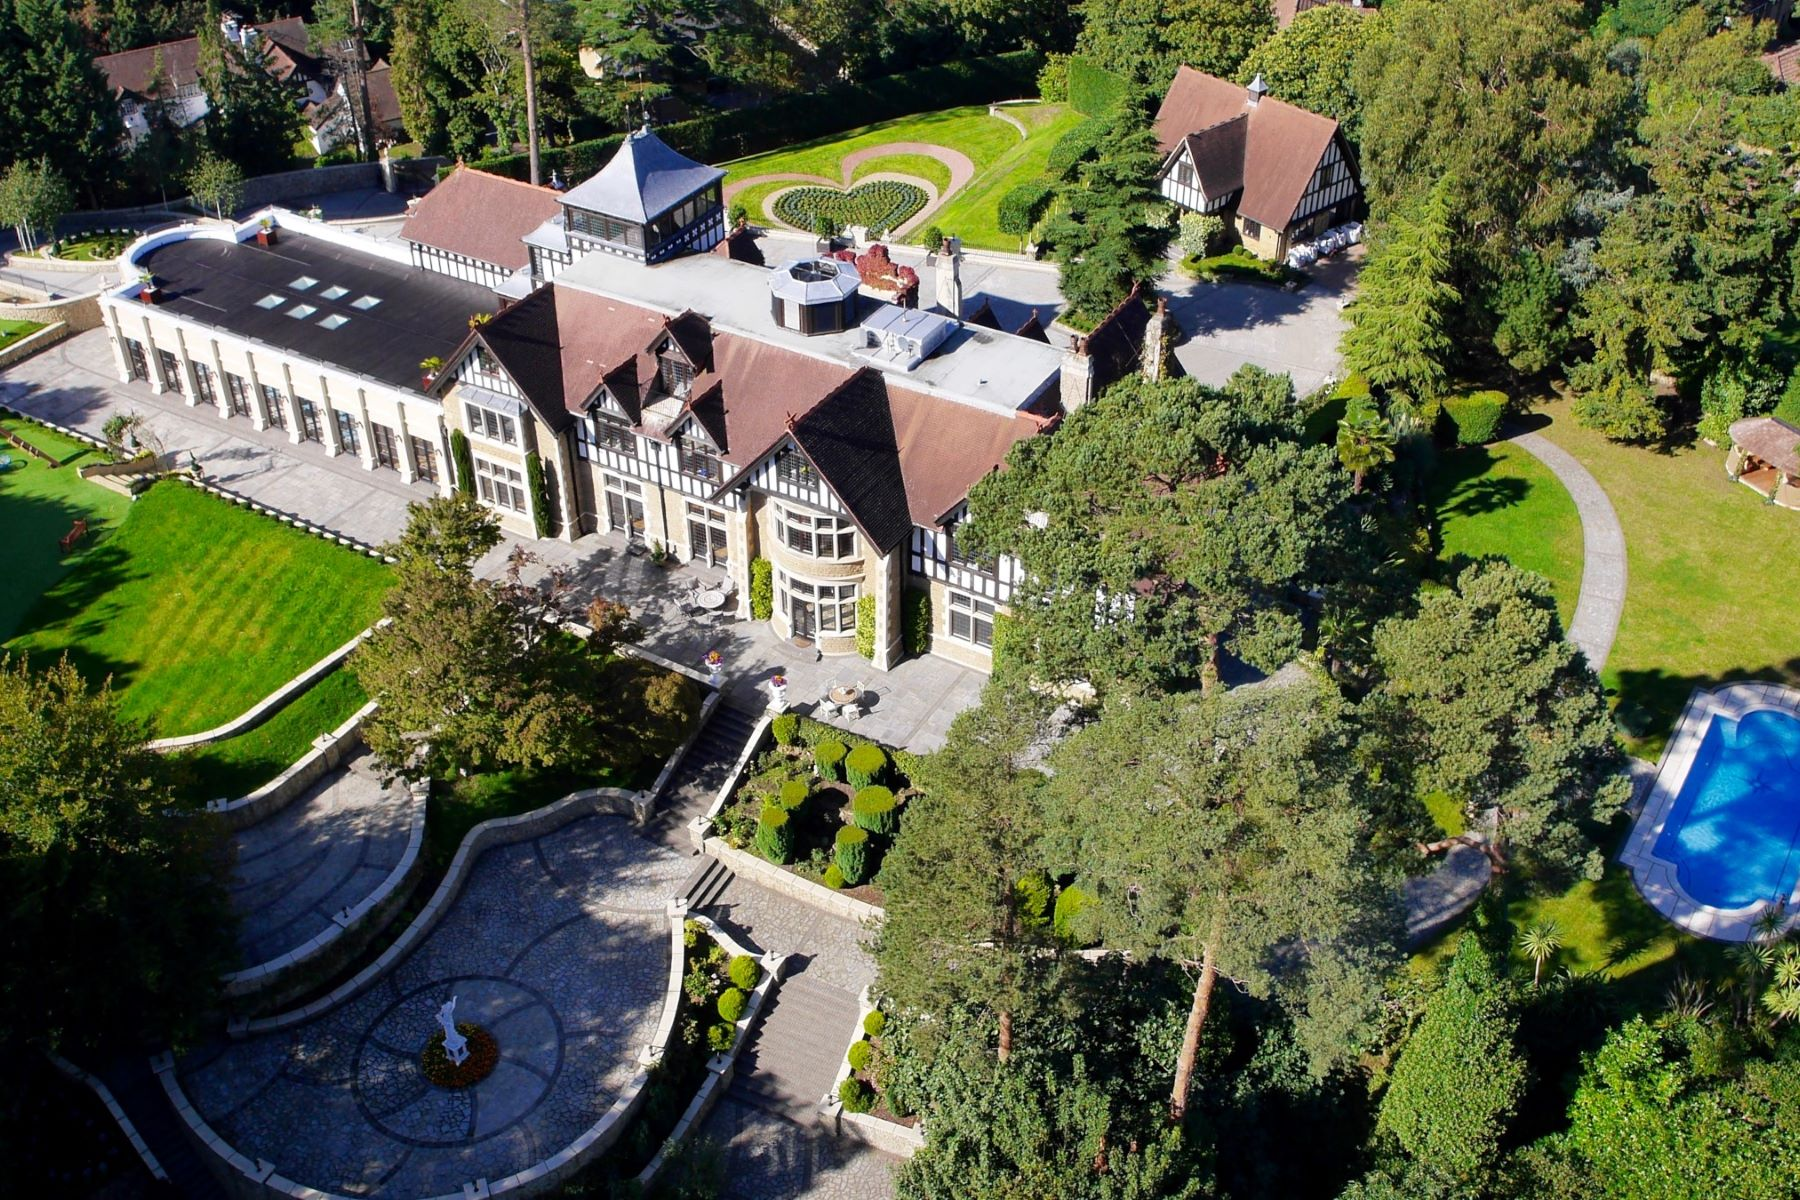 Single Family Home for Sale at Oxshott, Surrey Pinewood House Warren Lane Oxshott, England KT22 0ST United Kingdom